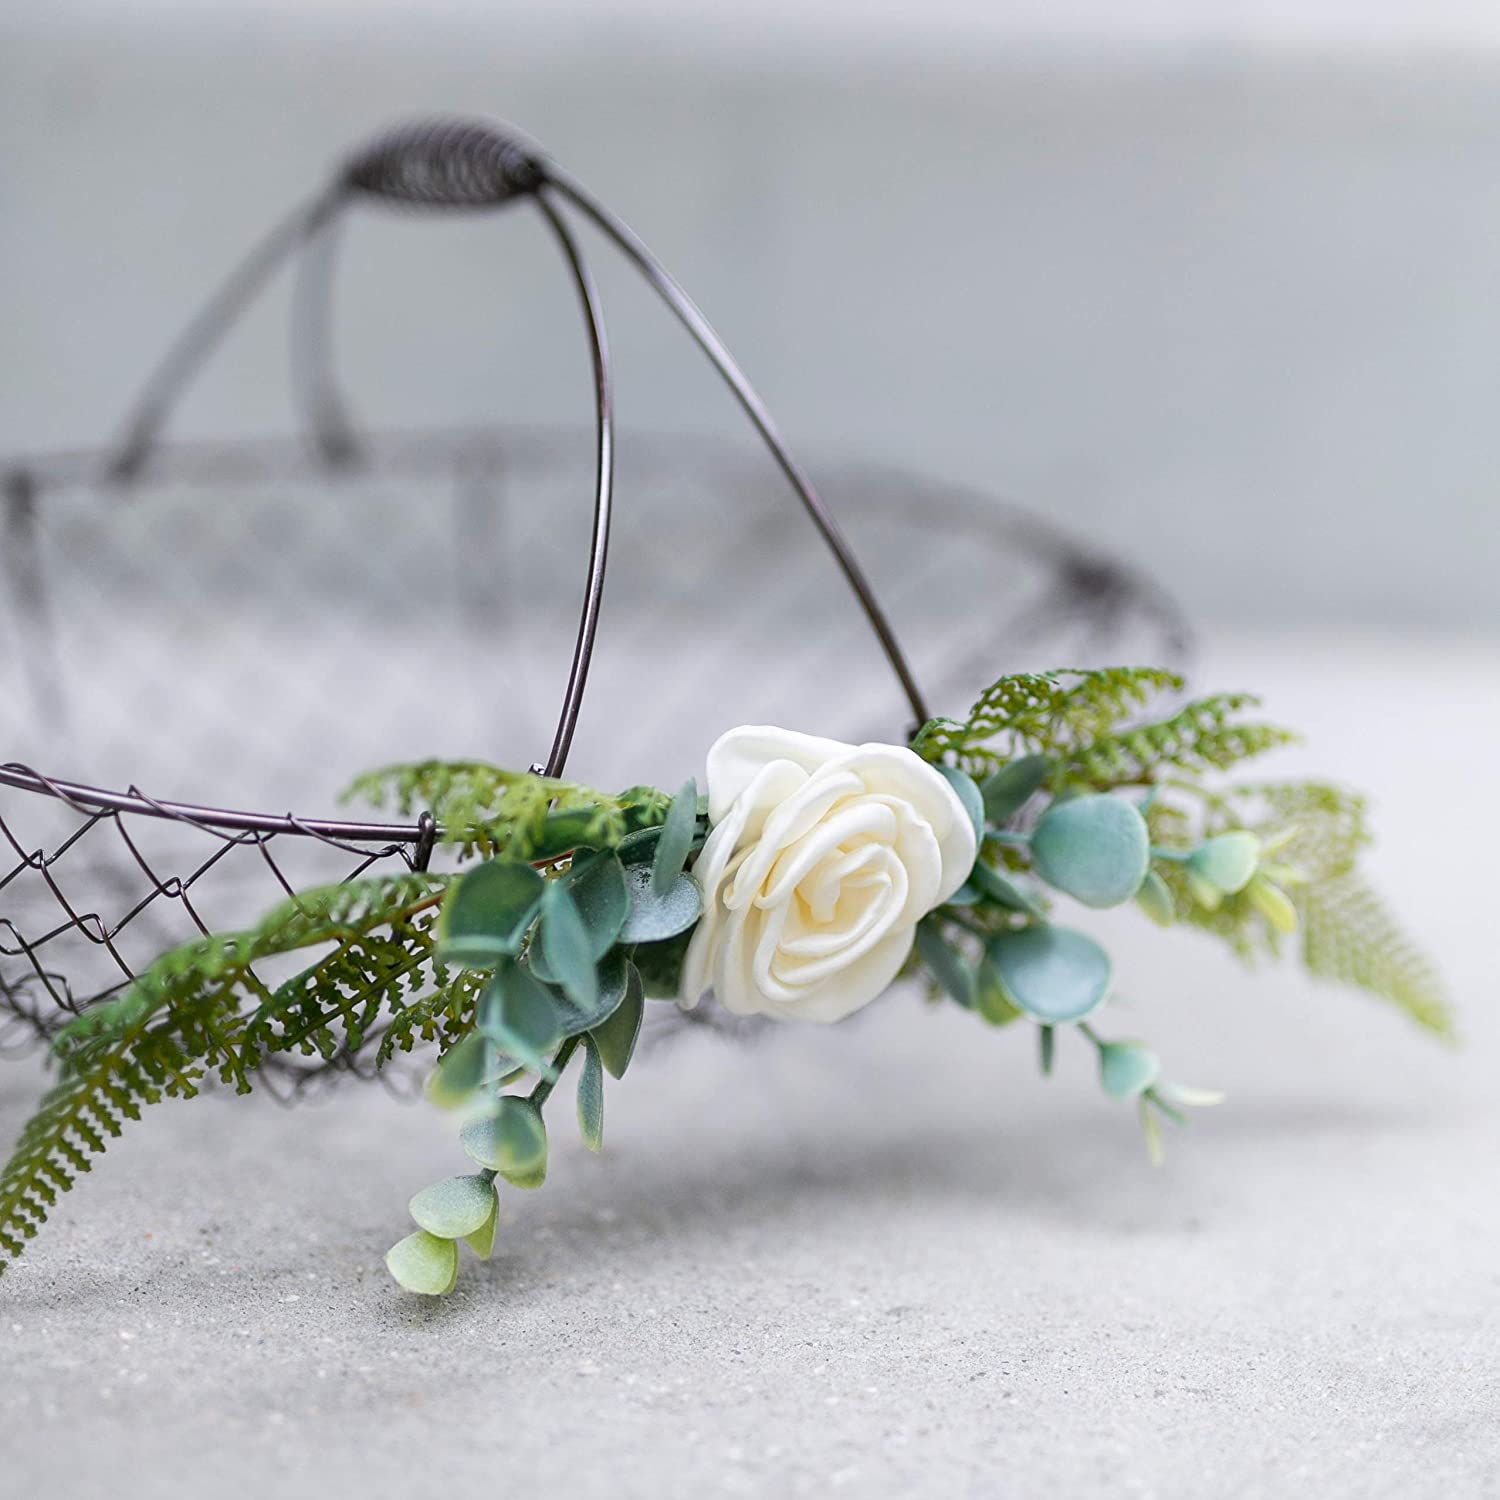 Flower Girl Basket for Petals by Ragga Wedding Wedding Basket w//Wood Handle Ivory Flower Girl Basket with Eucalyptus Greenery